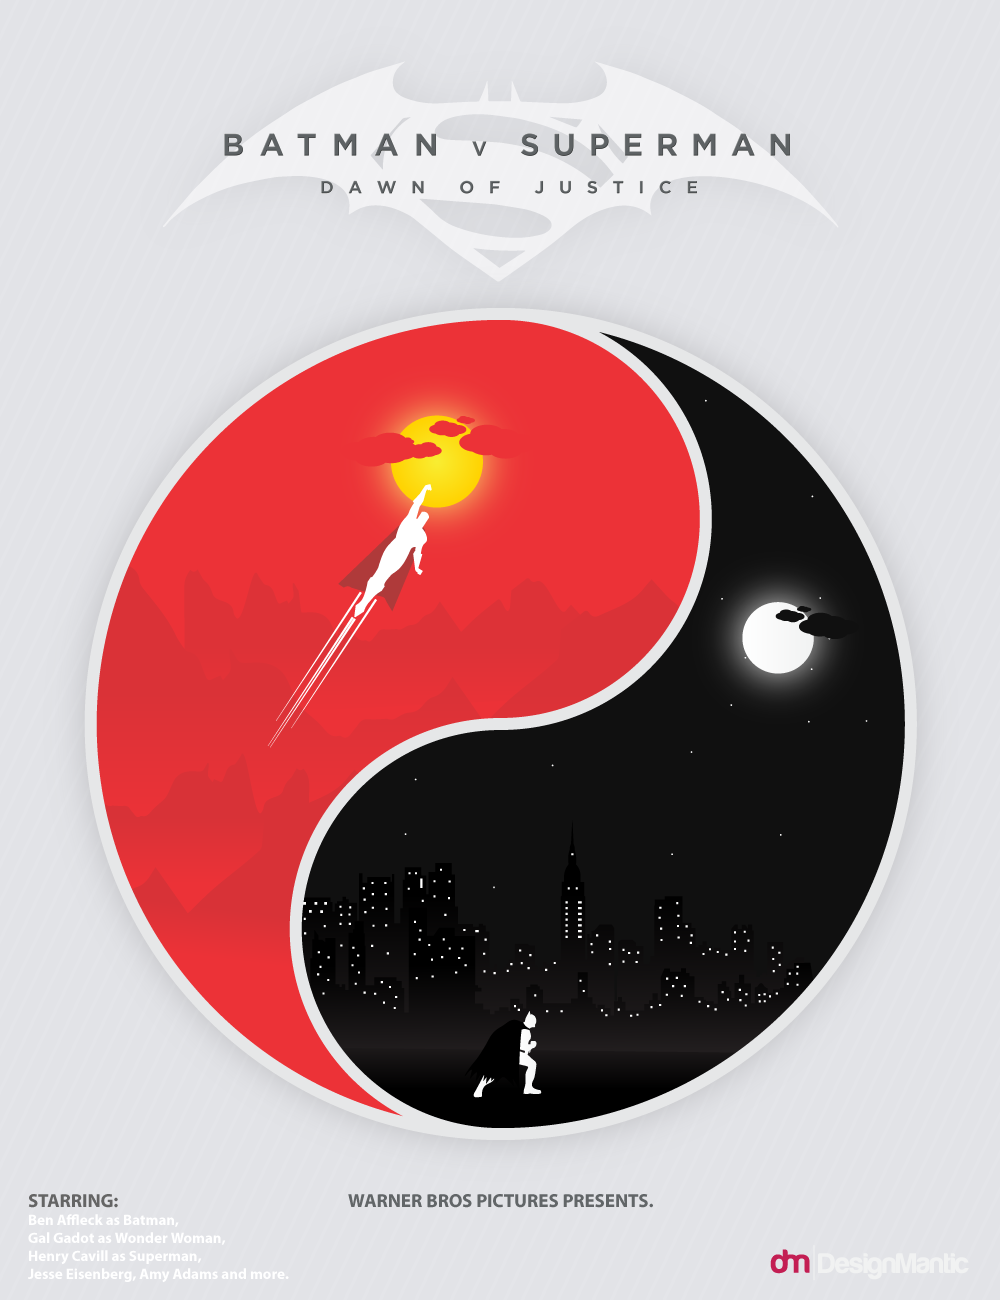 Poster design trends - Budding Trends In Poster Design With 2016 Movies In Spotlight Http